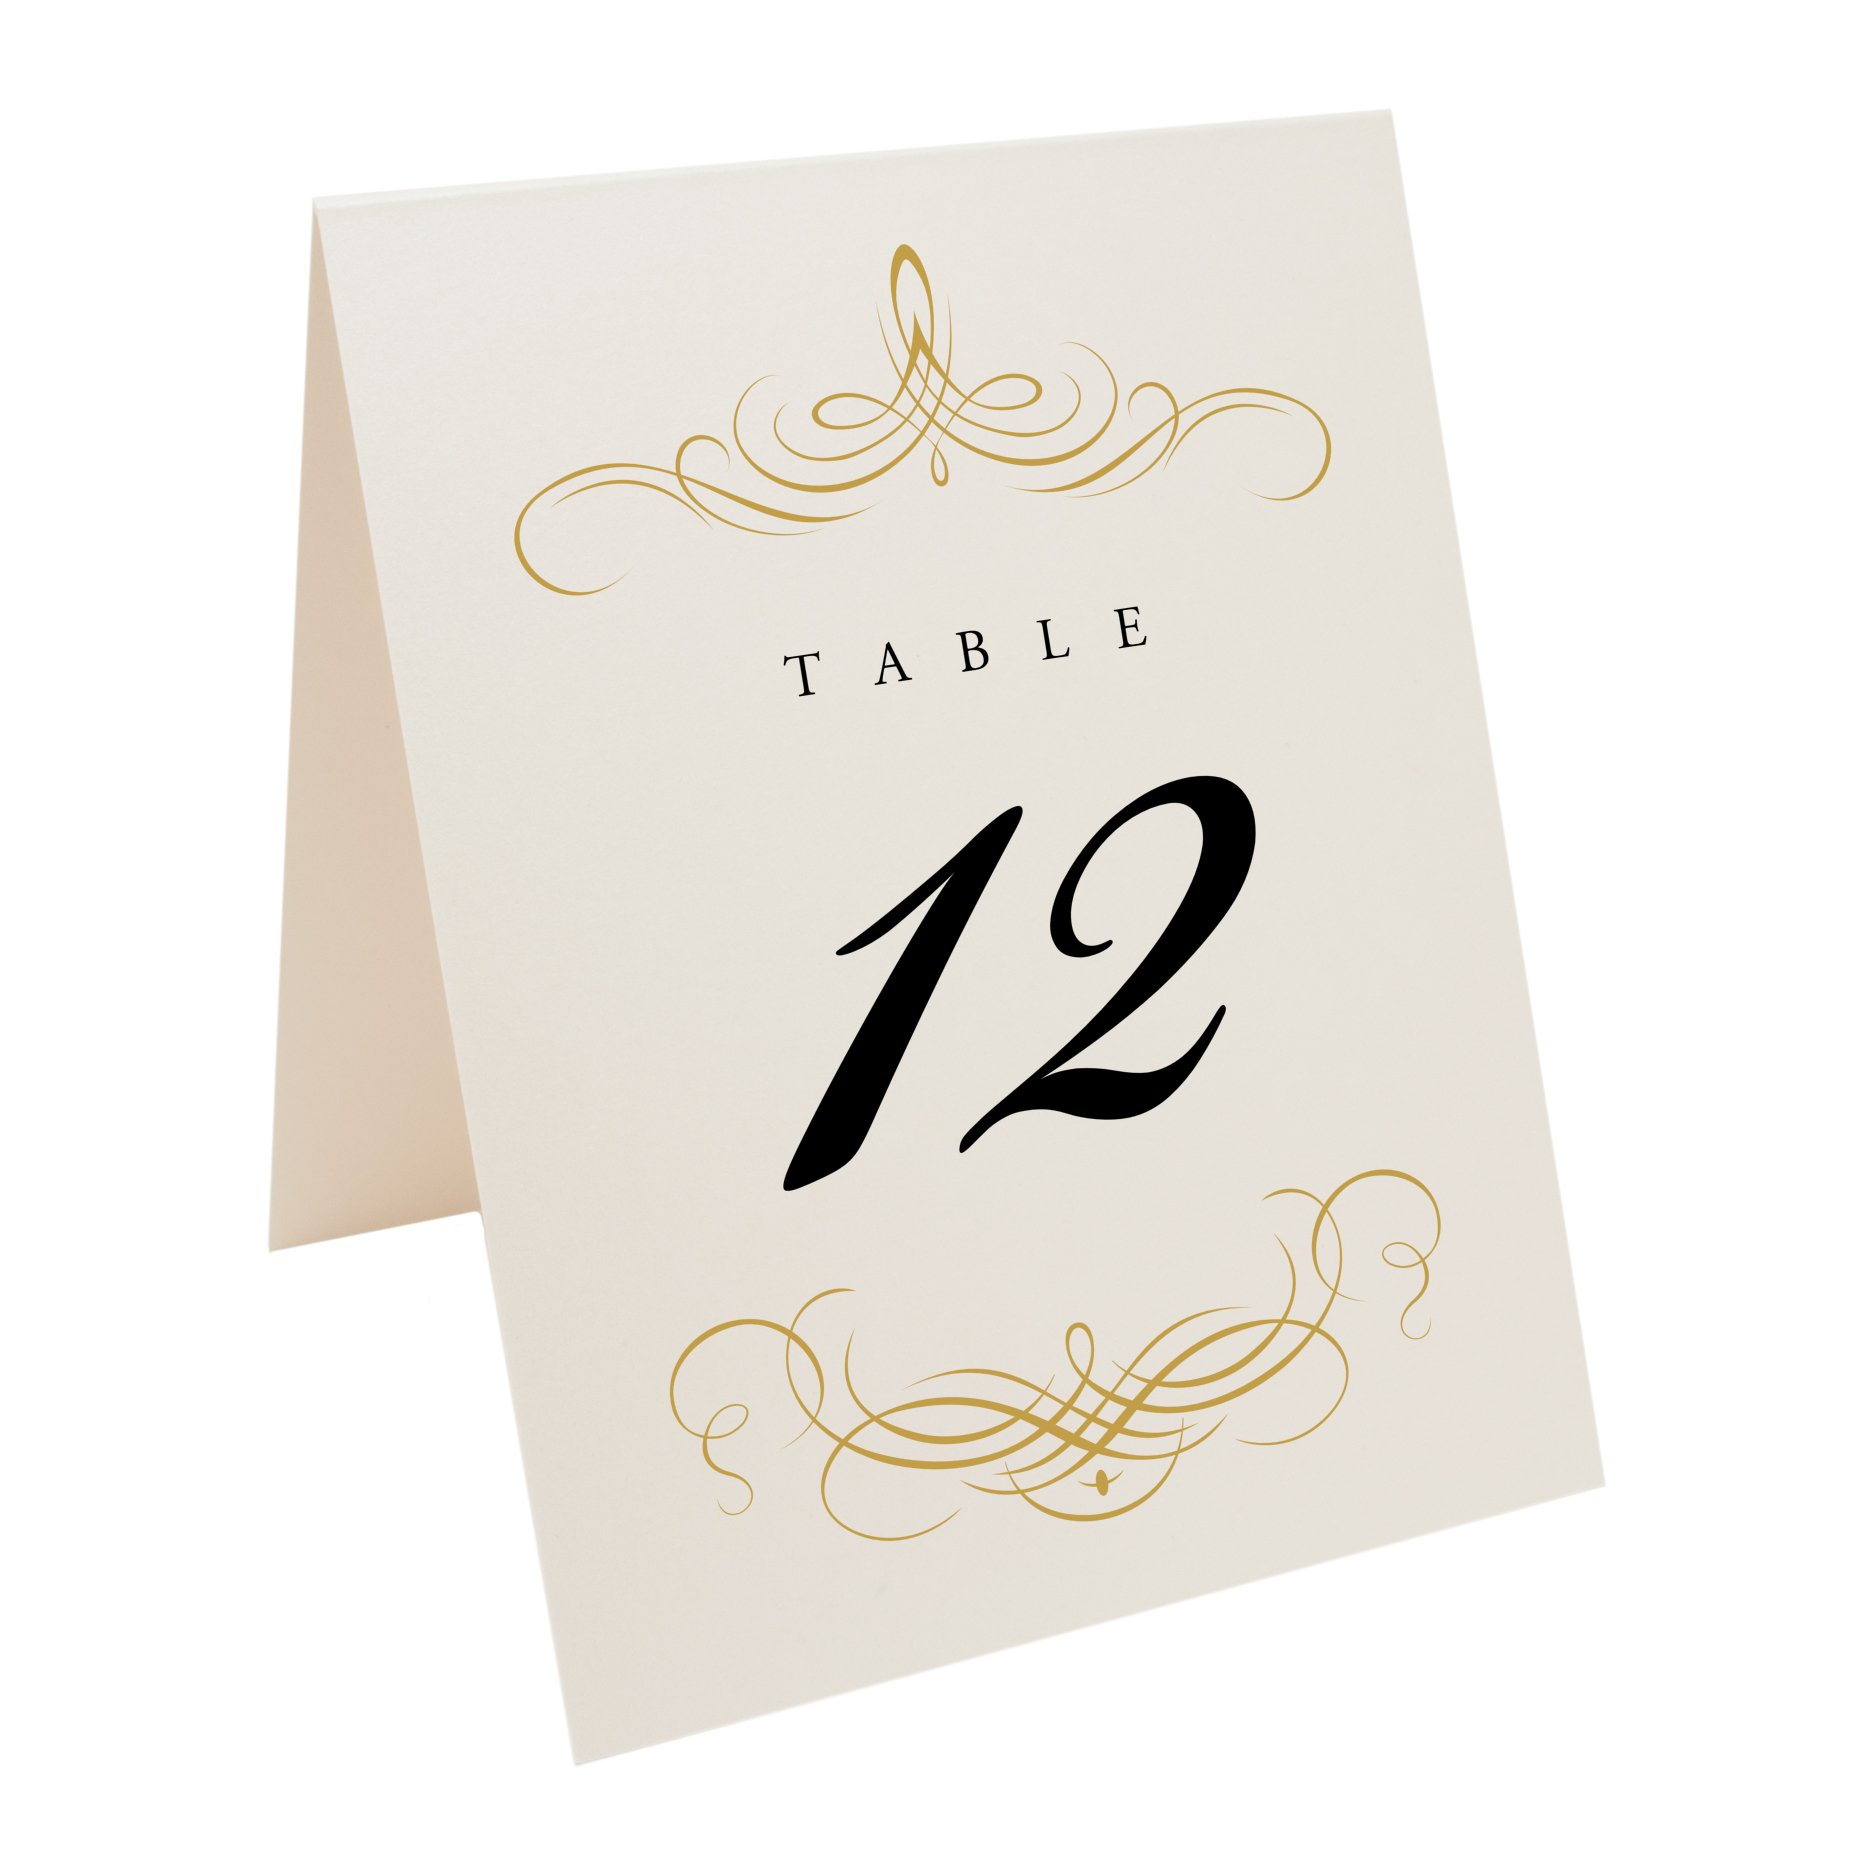 Documents and Designs Decadent Flourish Table Numbers (Select Color/Quantity), Champagne, Gold, 1-40 by Documents and Designs